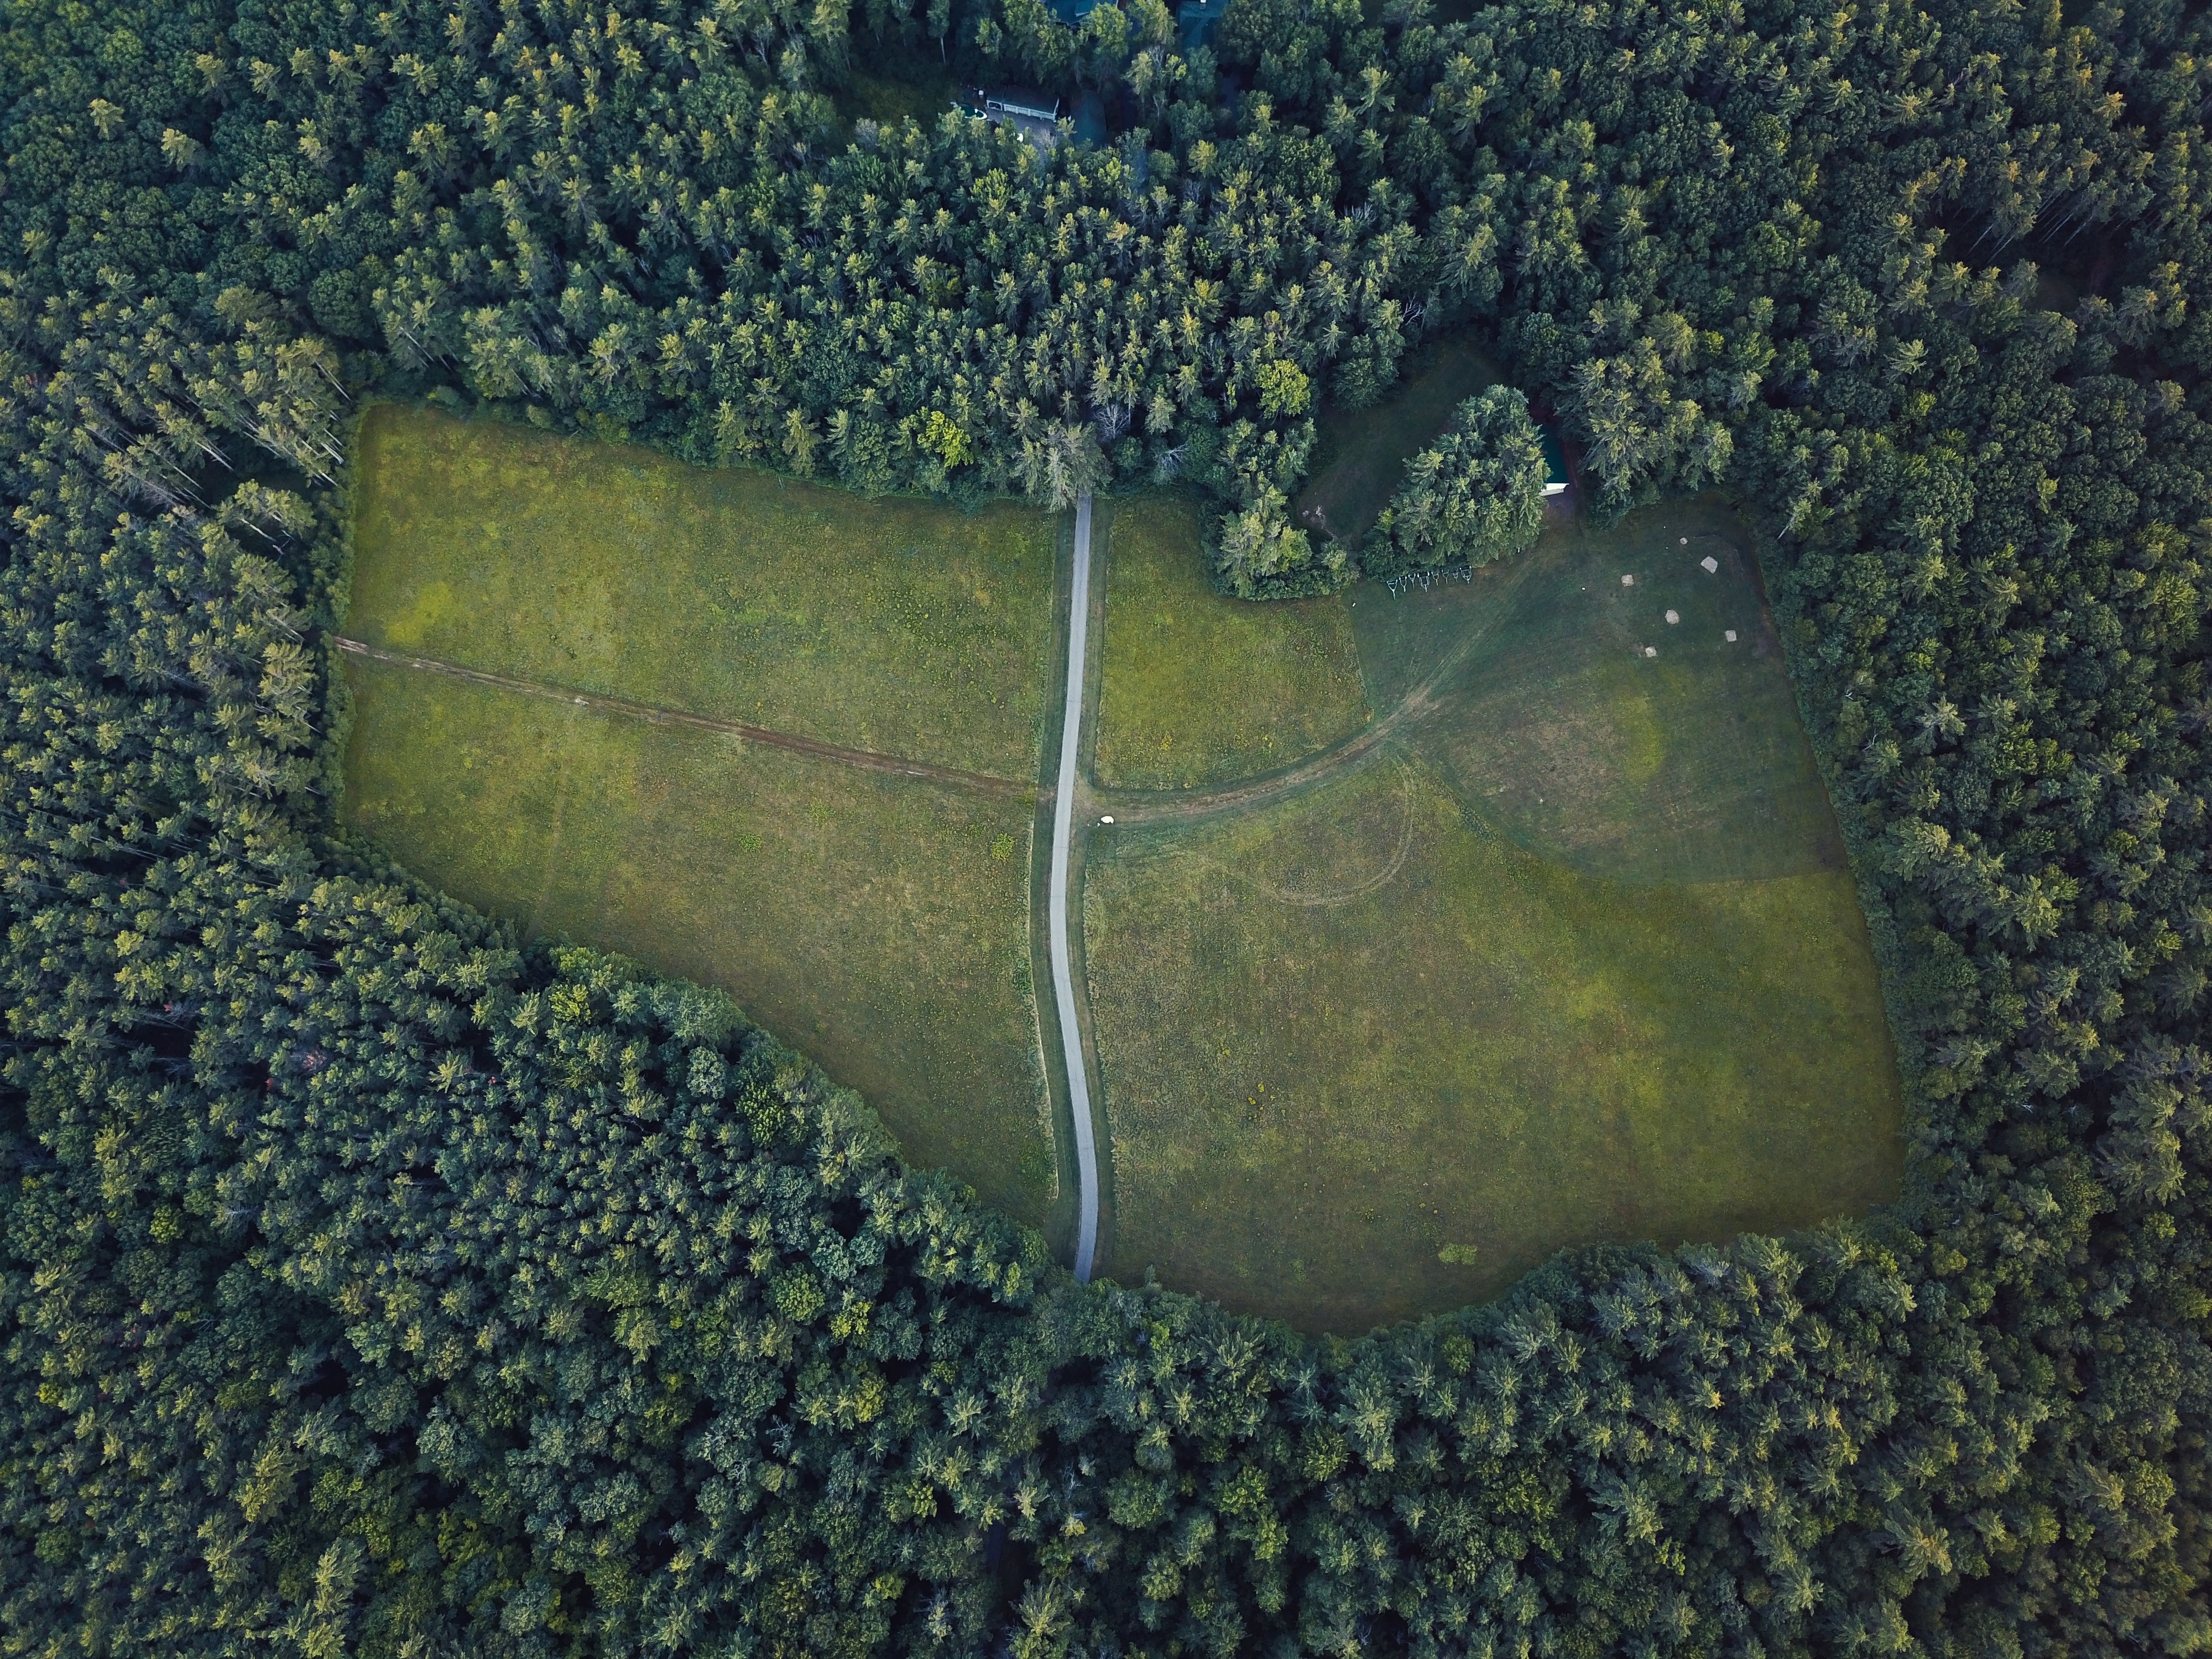 A drone view of a baseball field and soccer field, with a path through them, surrounded by dark green fir trees